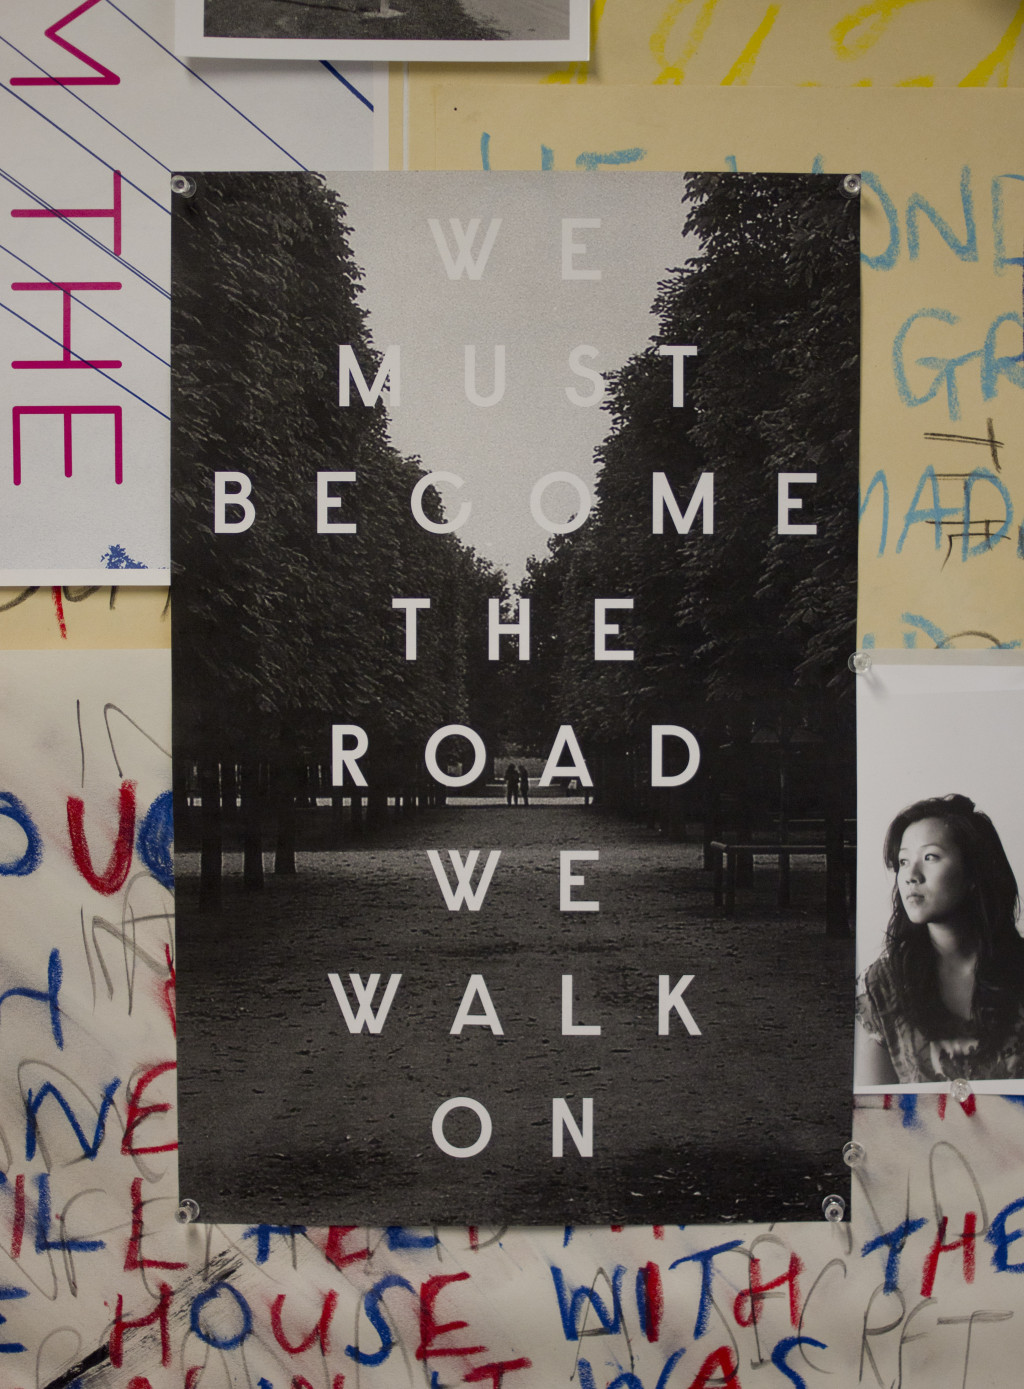 anthony-gerace-We-Must-Become-the-Road-We-Walk-On-1-e1432072902122